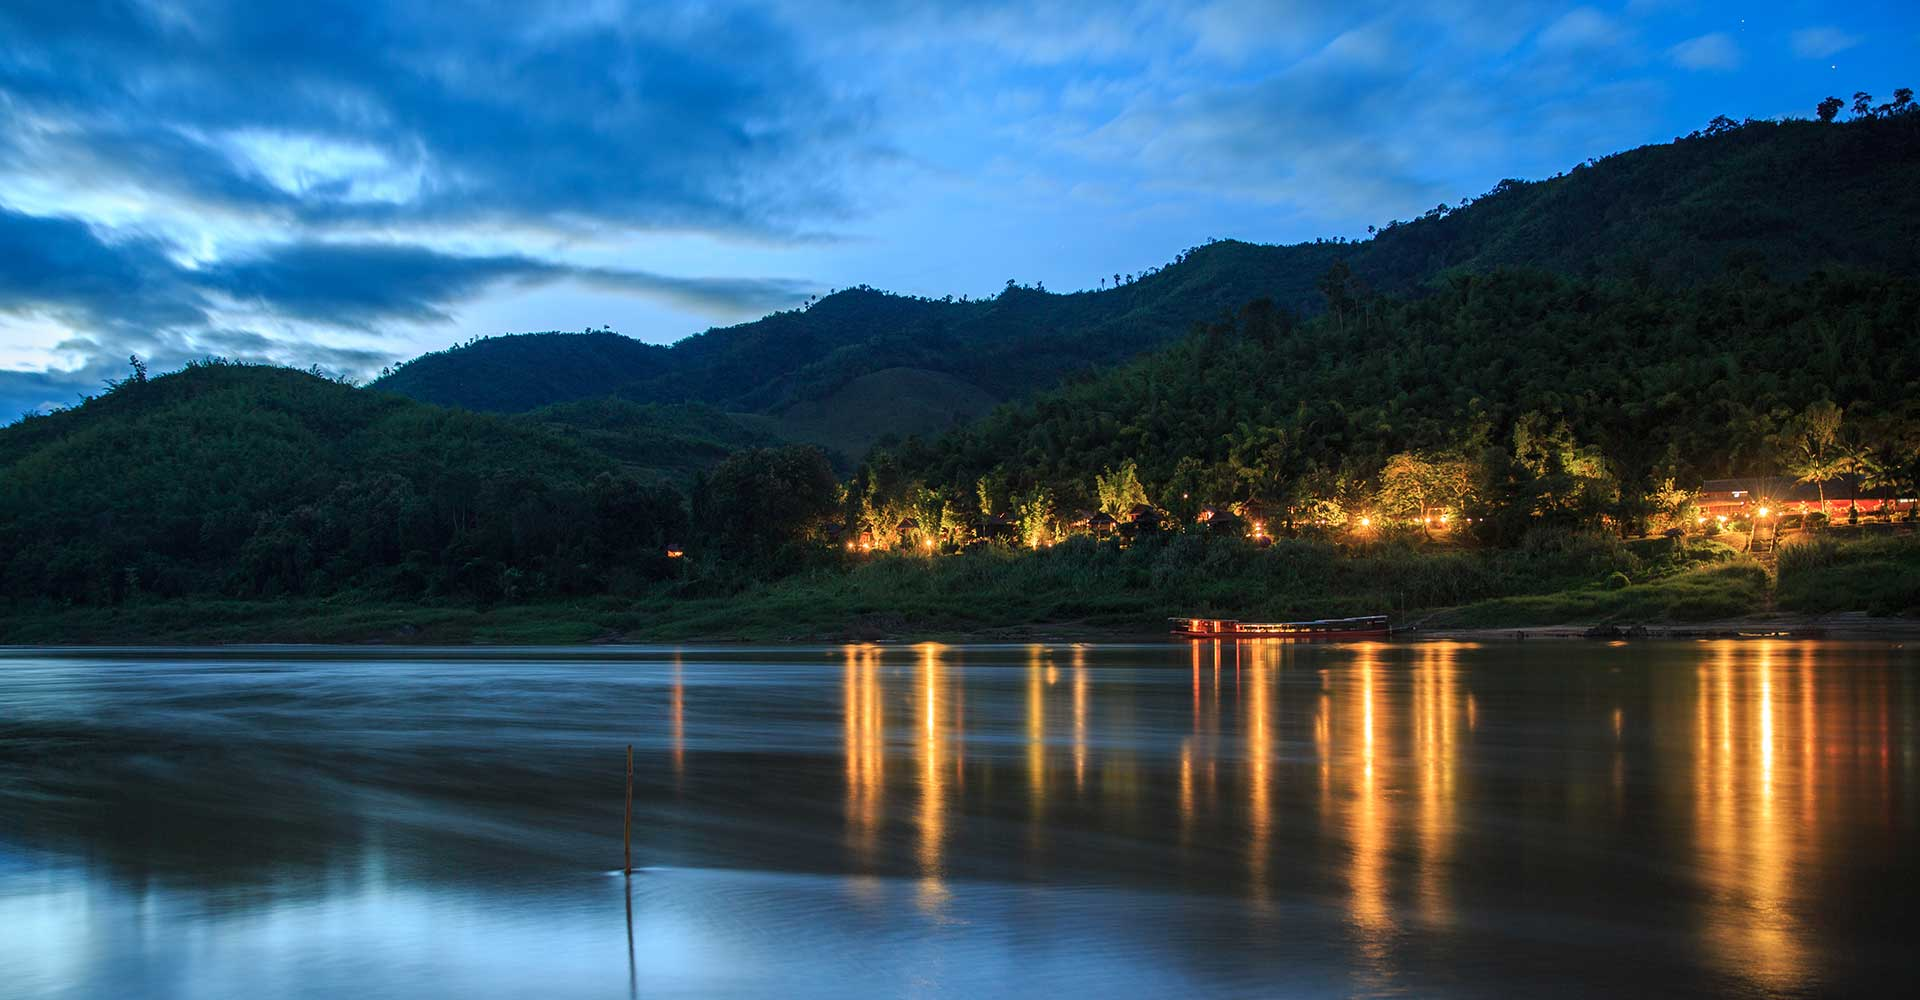 Luang prabang luxury boutique hotels secret retreats for Luang prabang luxury hotels